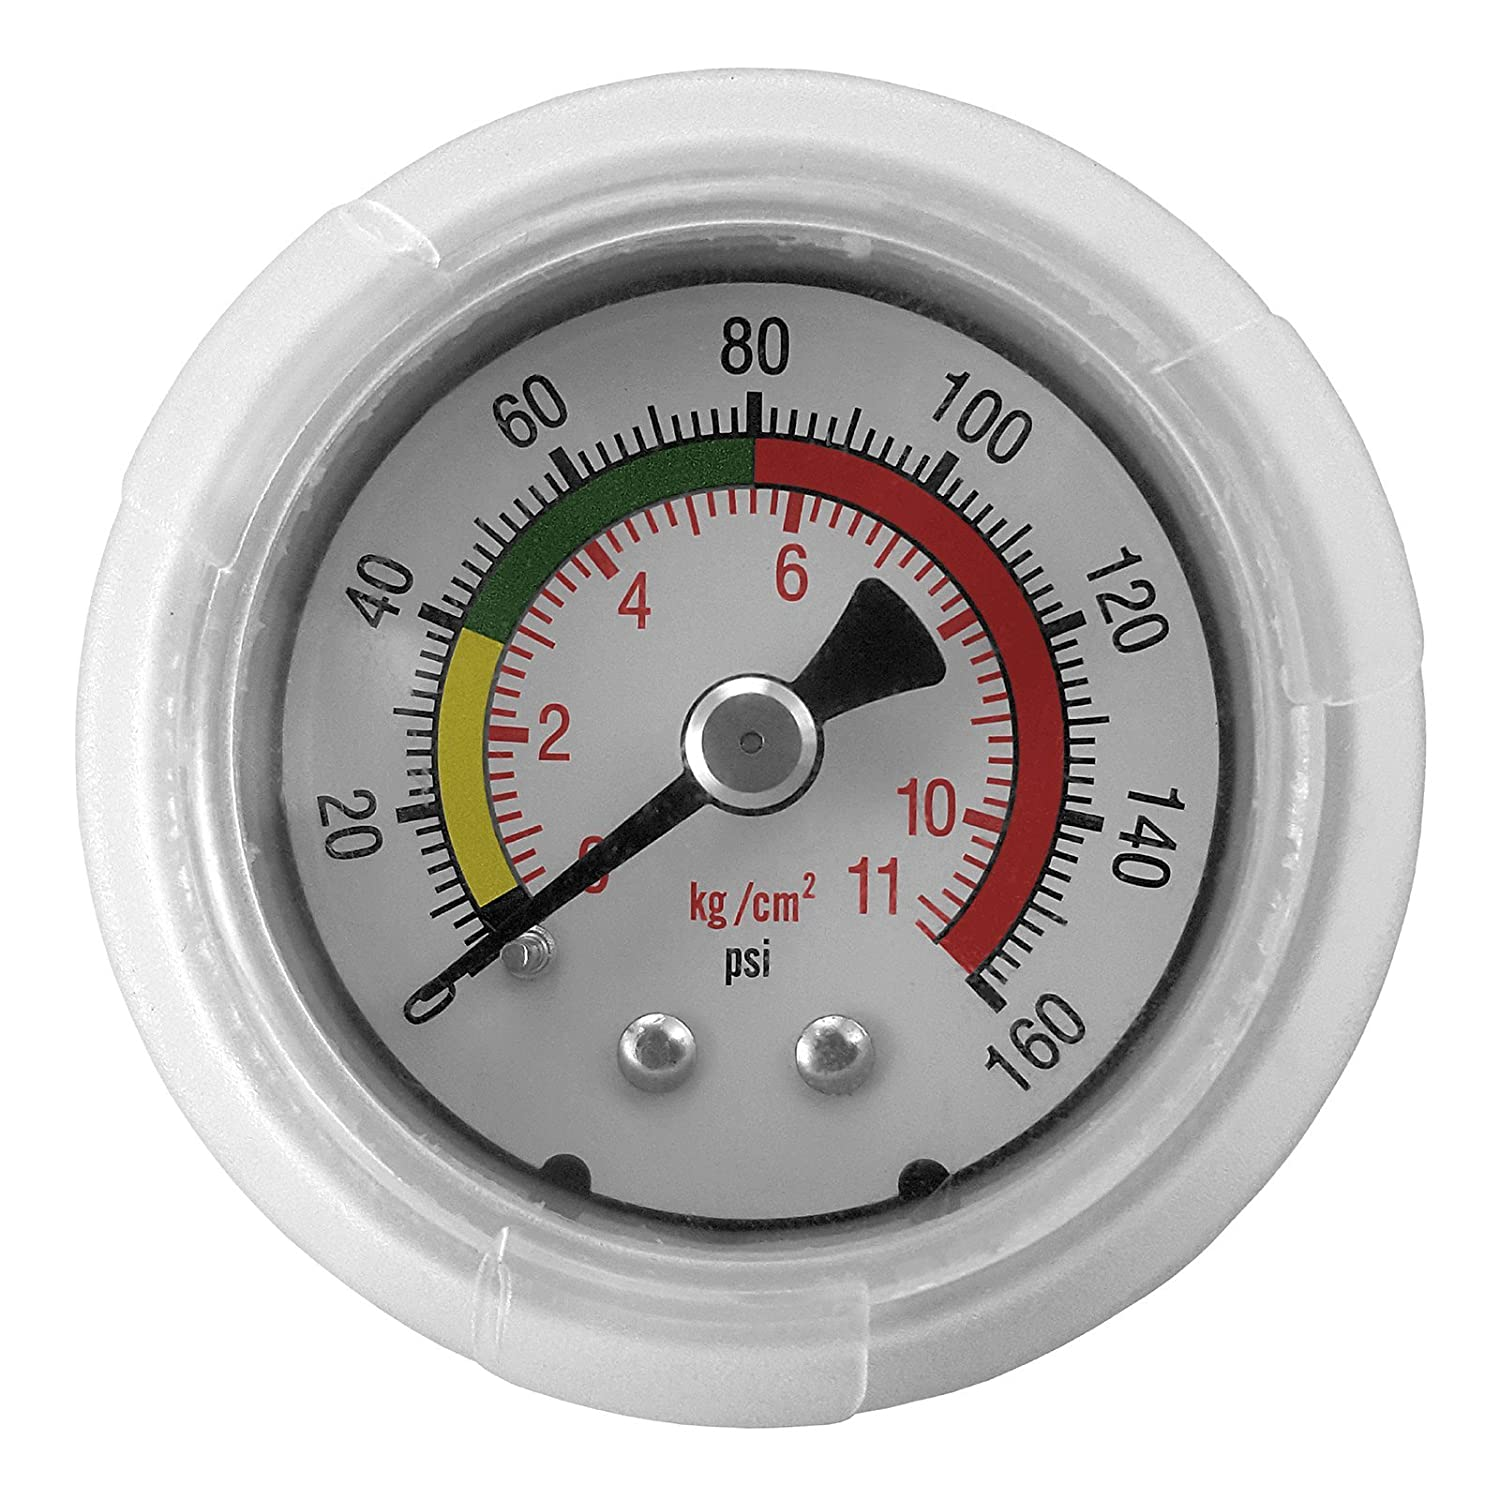 Express Water Quick Connect Water Pressure Gauge 160 PSI Parts Fittings Connection for Water Filters / Reverse Osmosis RO Systems PRTG1402